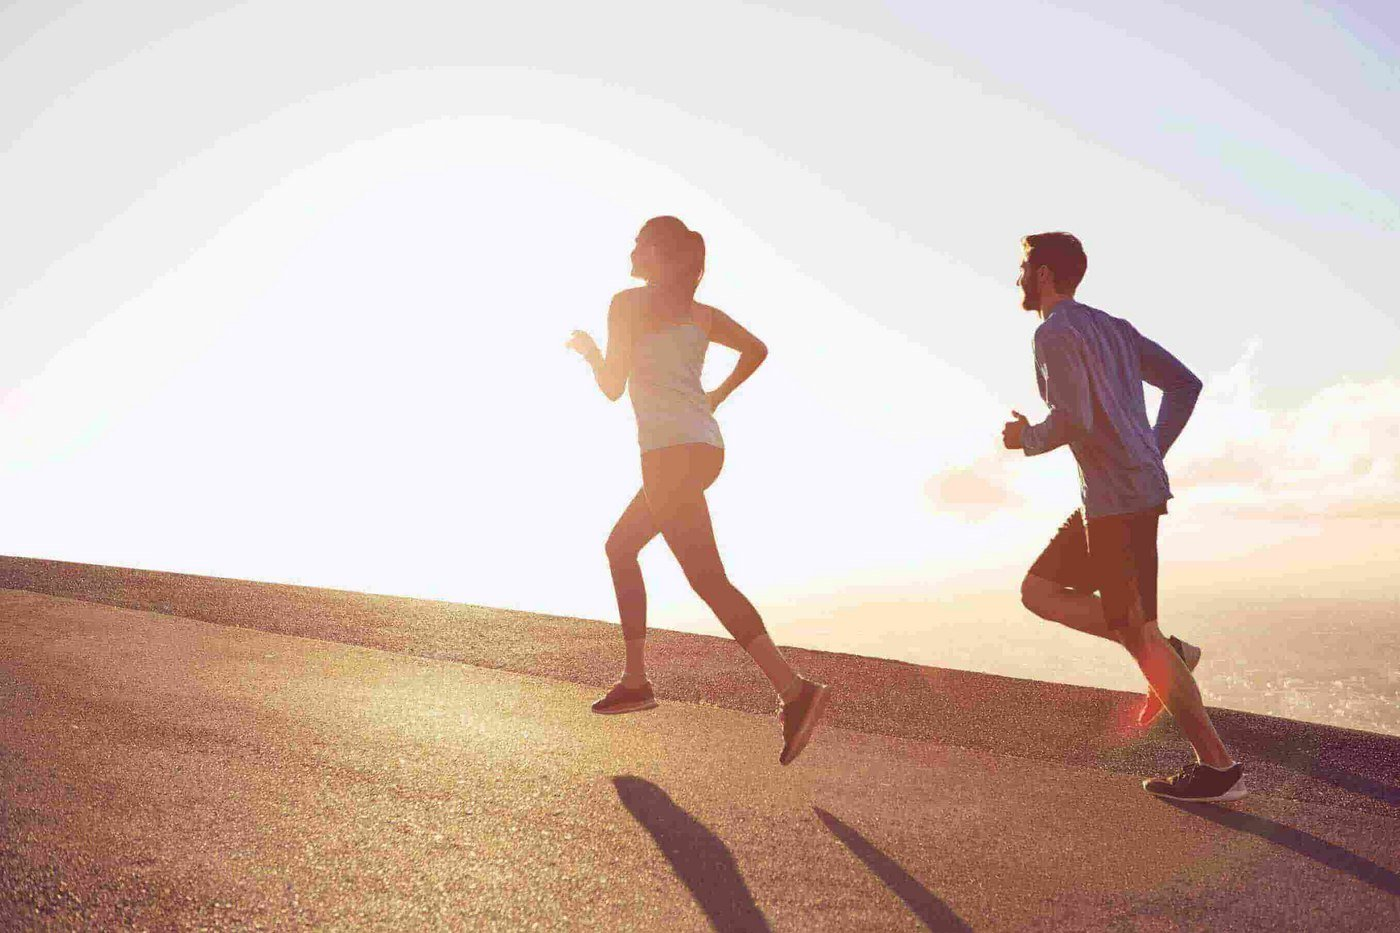 What Does It Mean If I Have Pain Behind My Knee While Running?